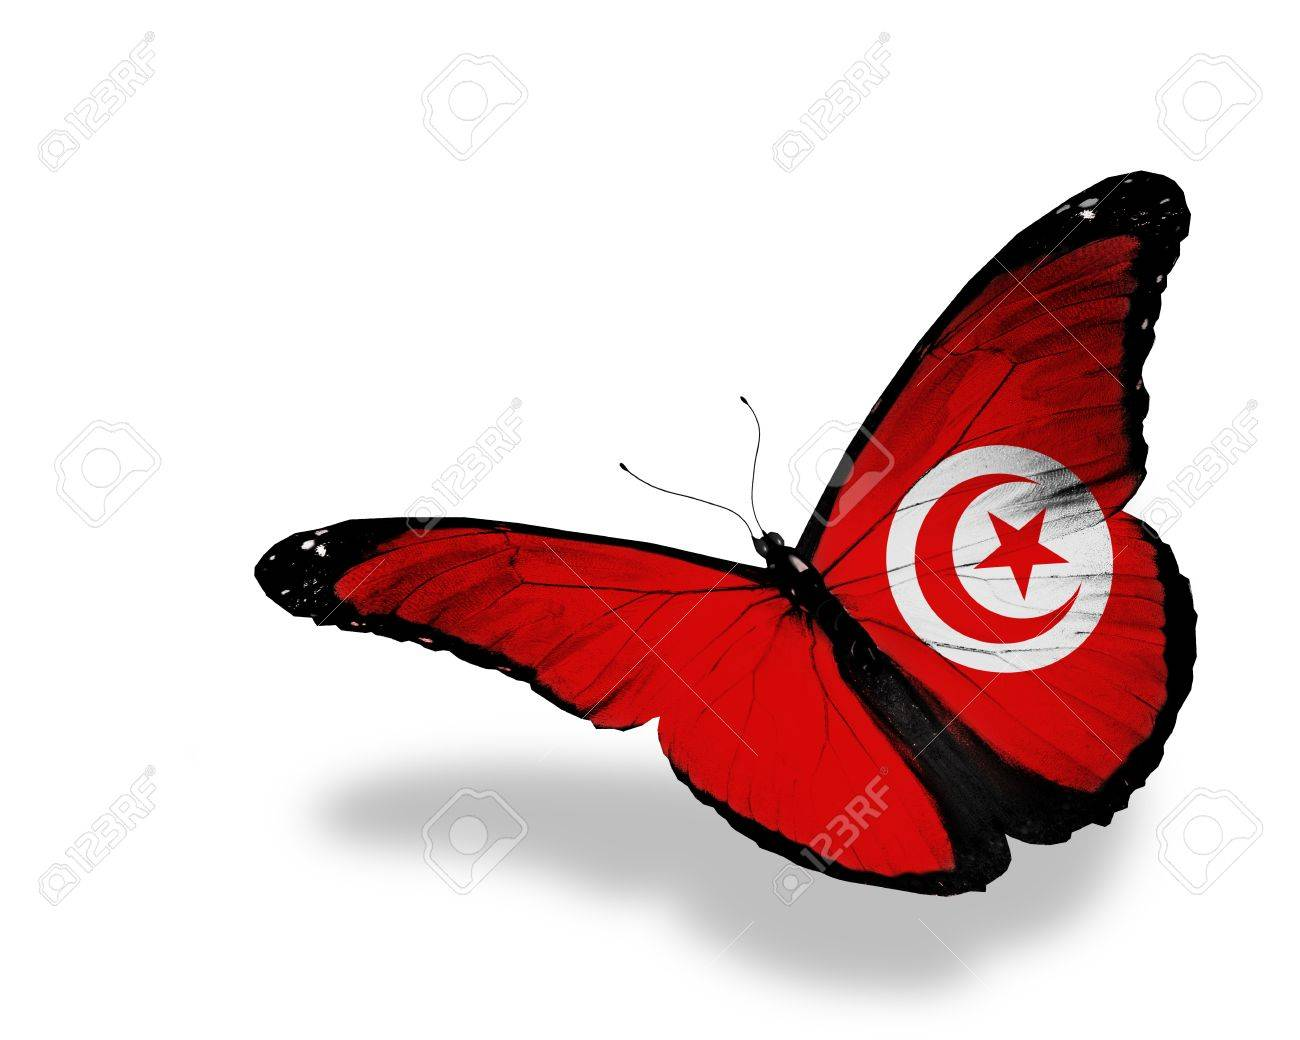 Tunisian flag butterfly flying, isolated on white background Stock Photo - 13698802